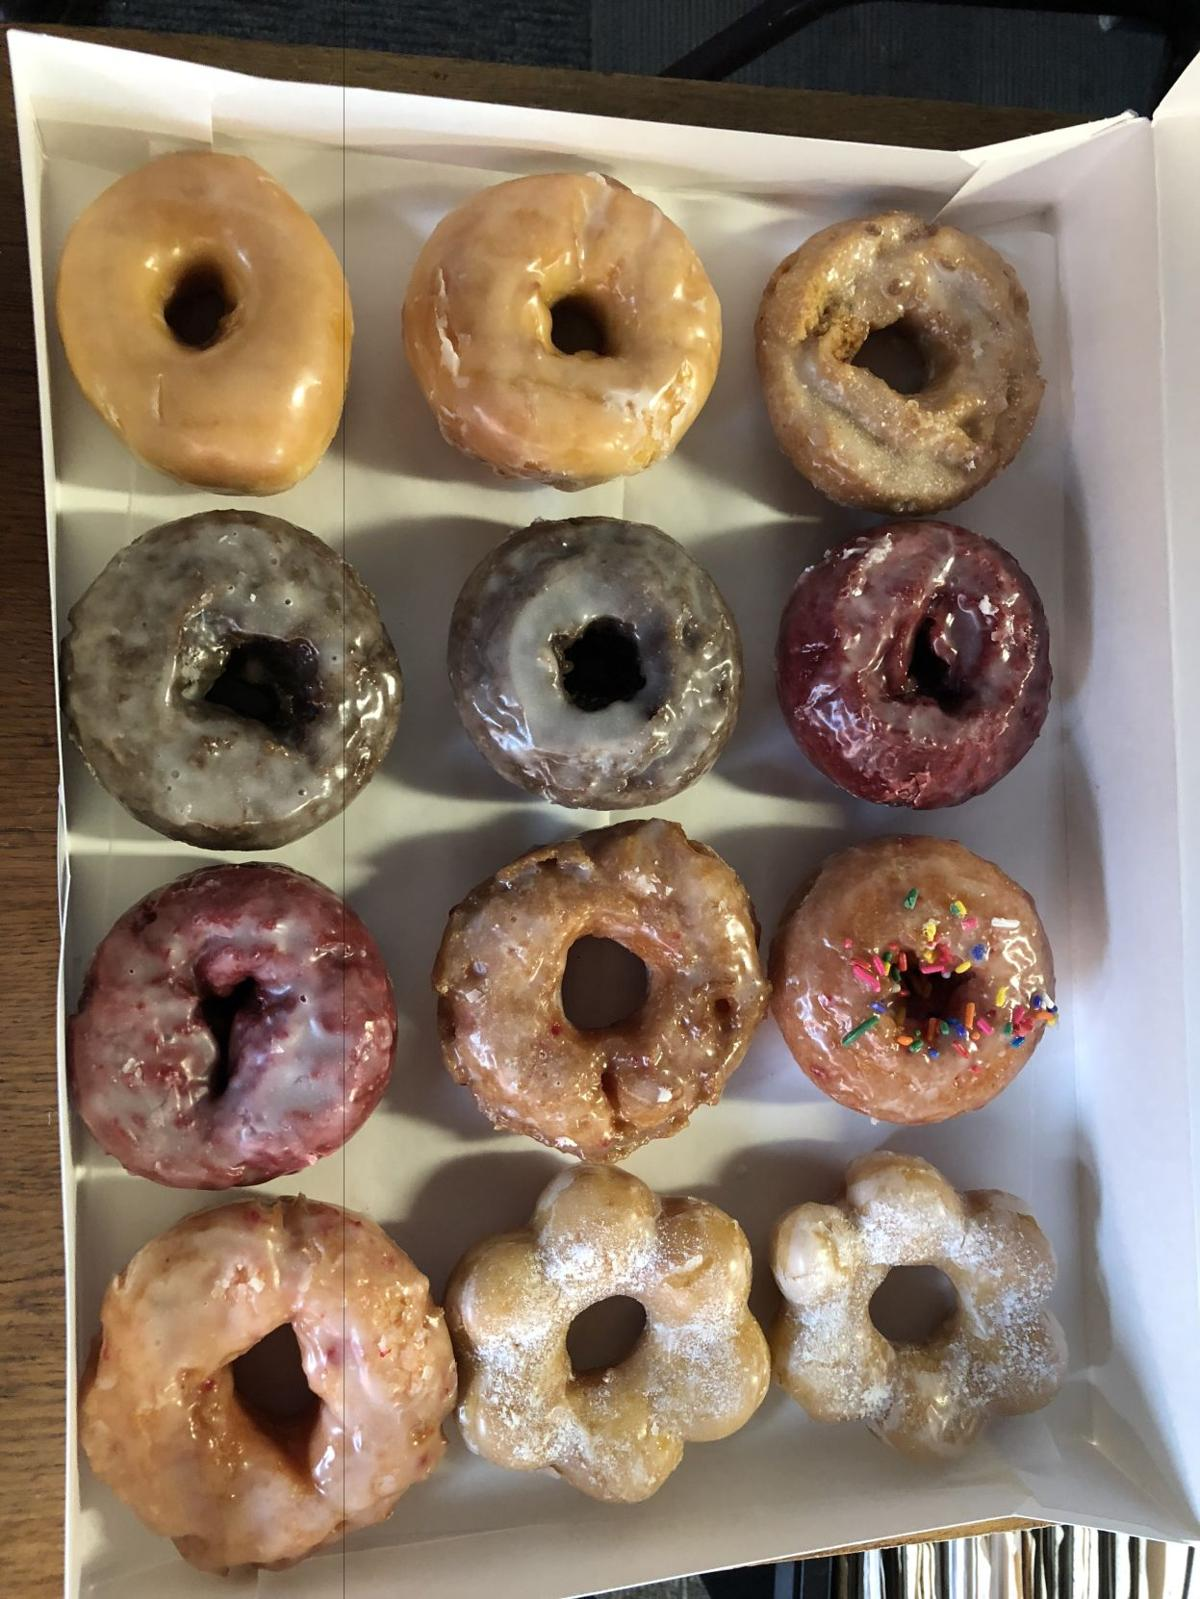 Donuts from Hilltop Deli.